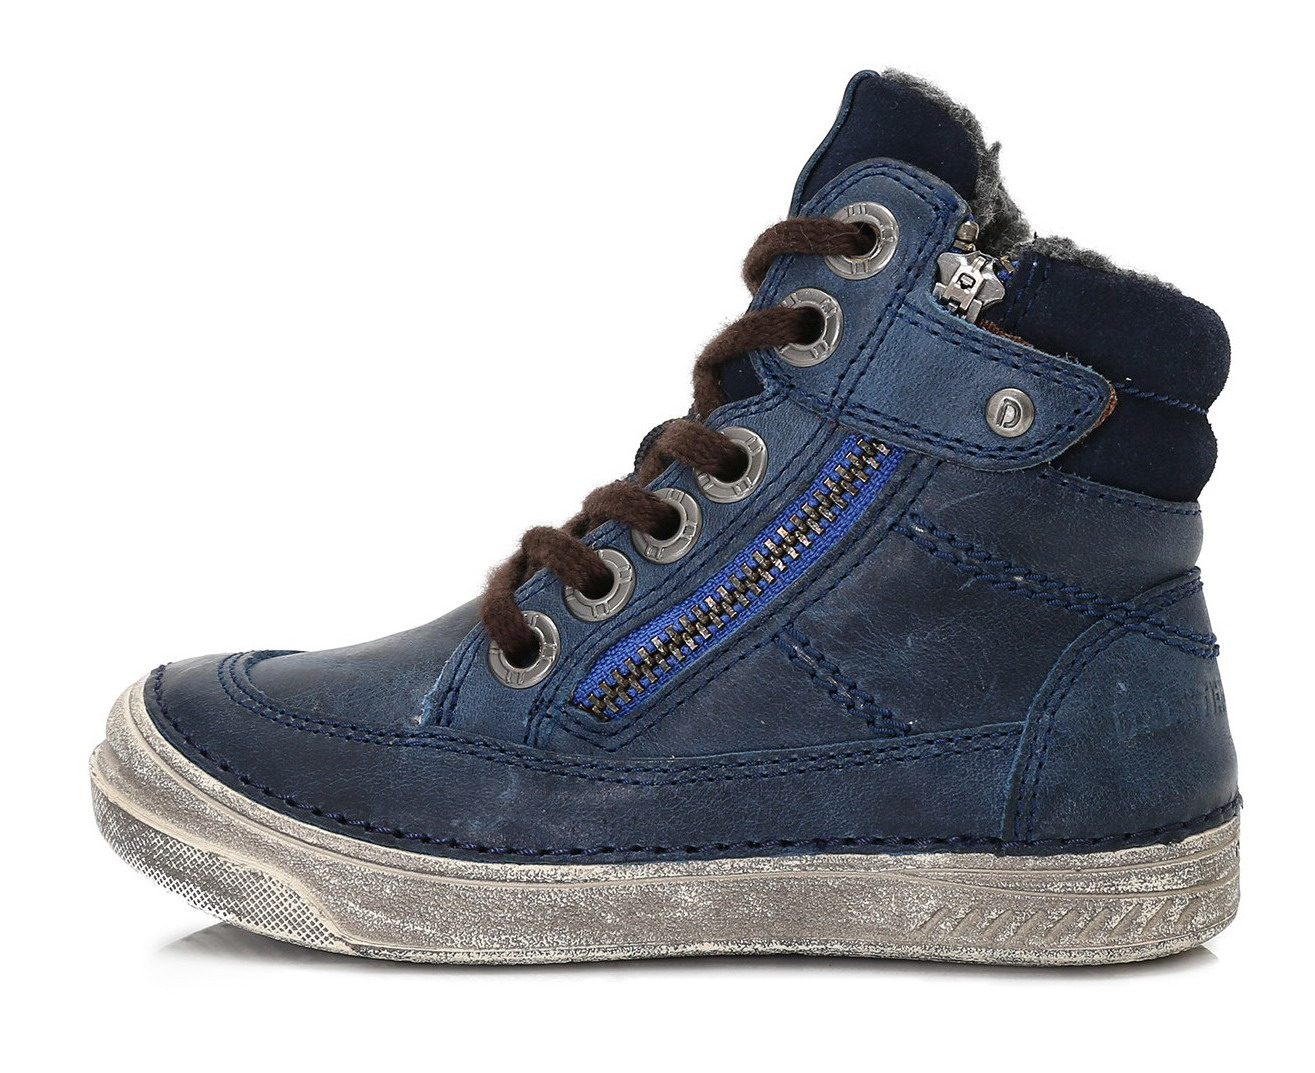 Obuv D.D.Step 040-429B Royal Blue